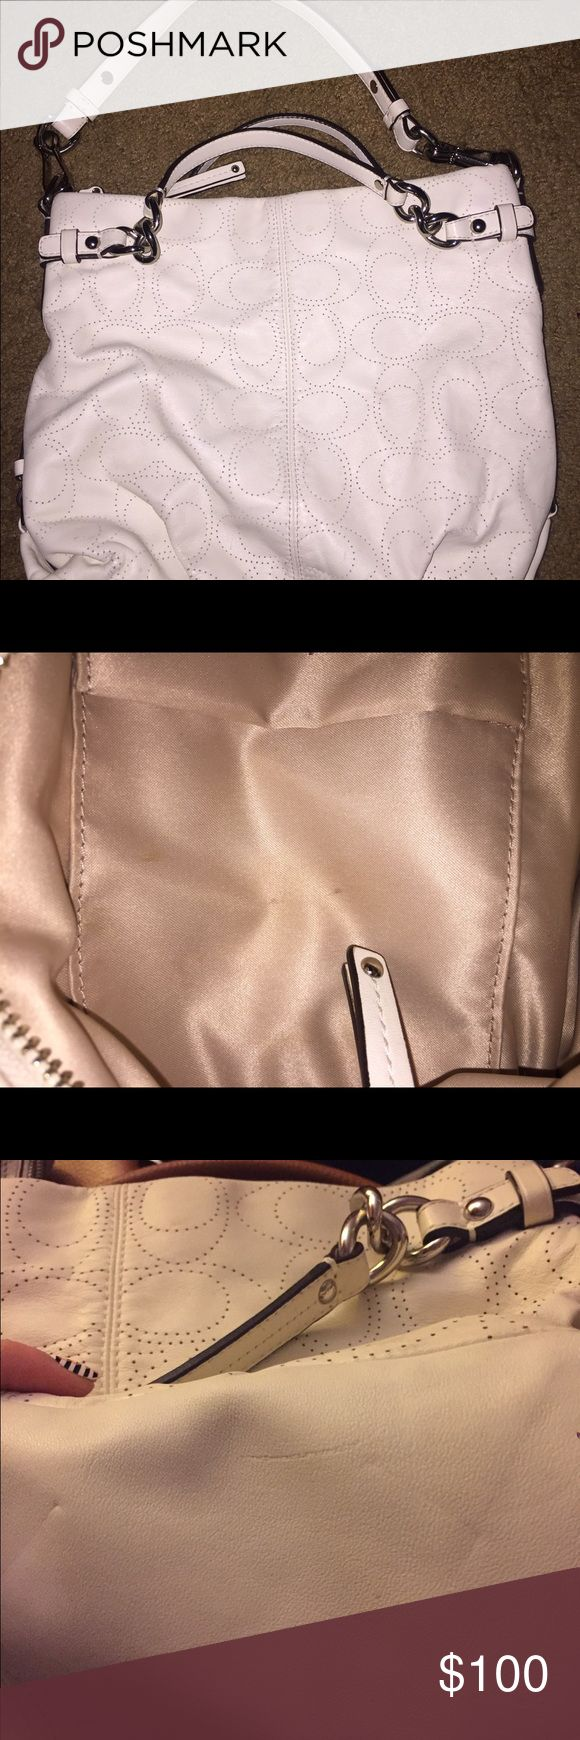 Coach leather handbag Great condition. Small mark on the inside. Picture shown and small marks on bottom show. Leather cream white color. Coach Bags Shoulder Bags